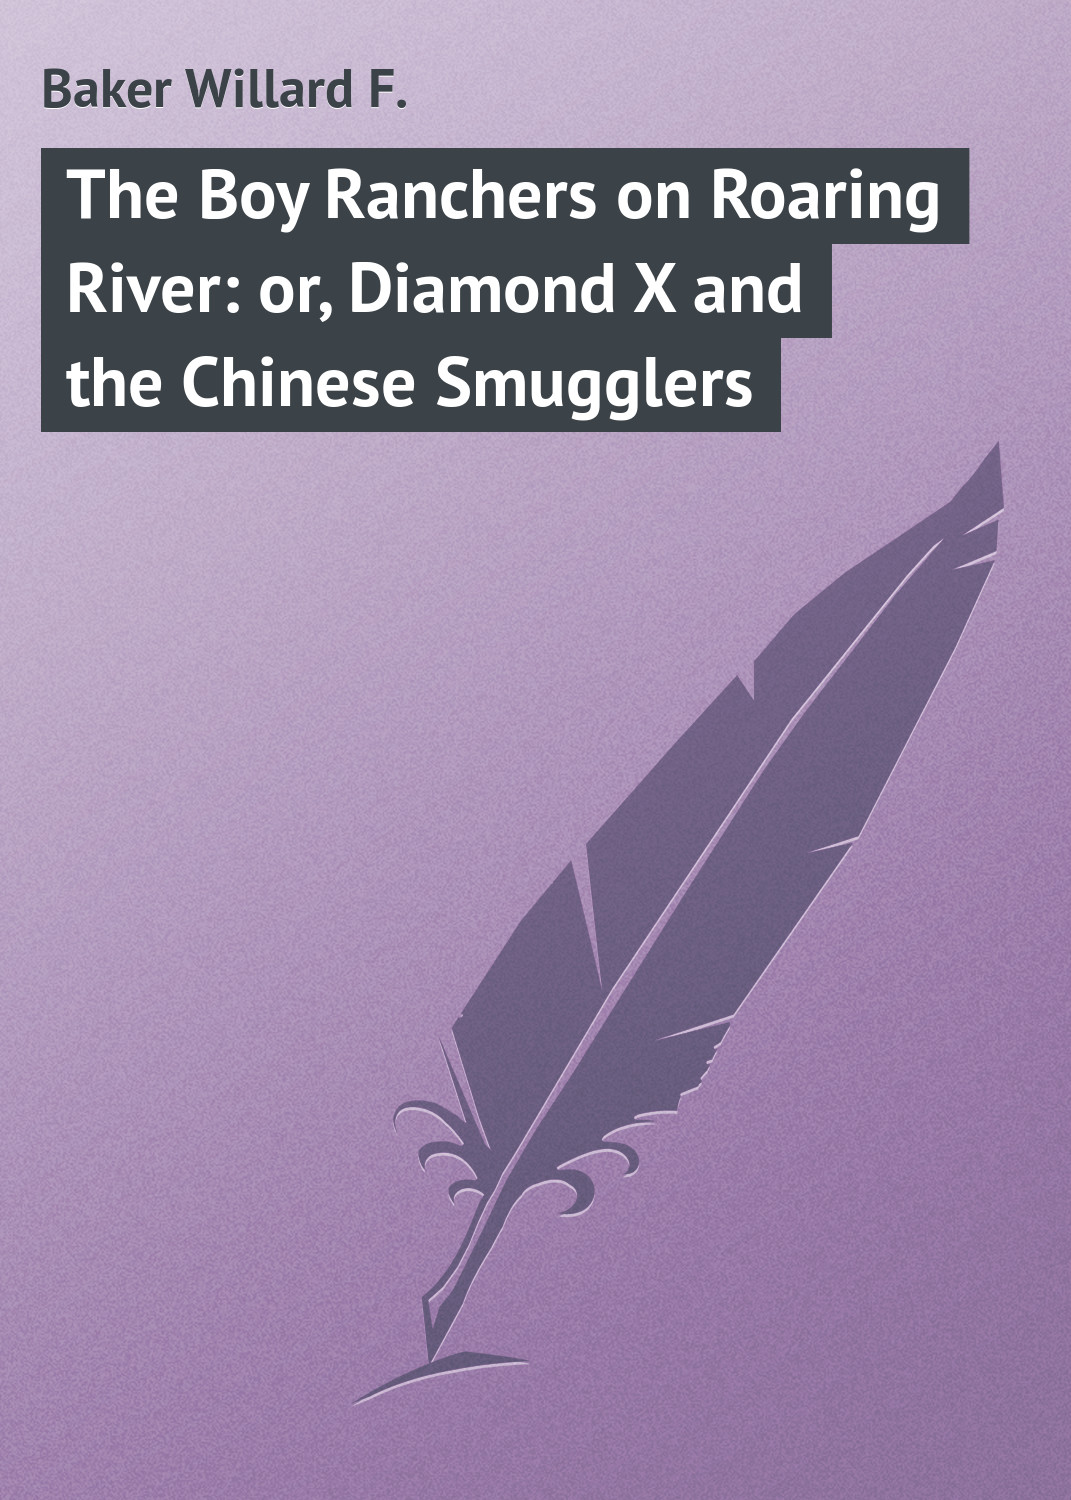 Baker Willard F. The Boy Ranchers on Roaring River: or, Diamond X and the Chinese Smugglers the artful baker